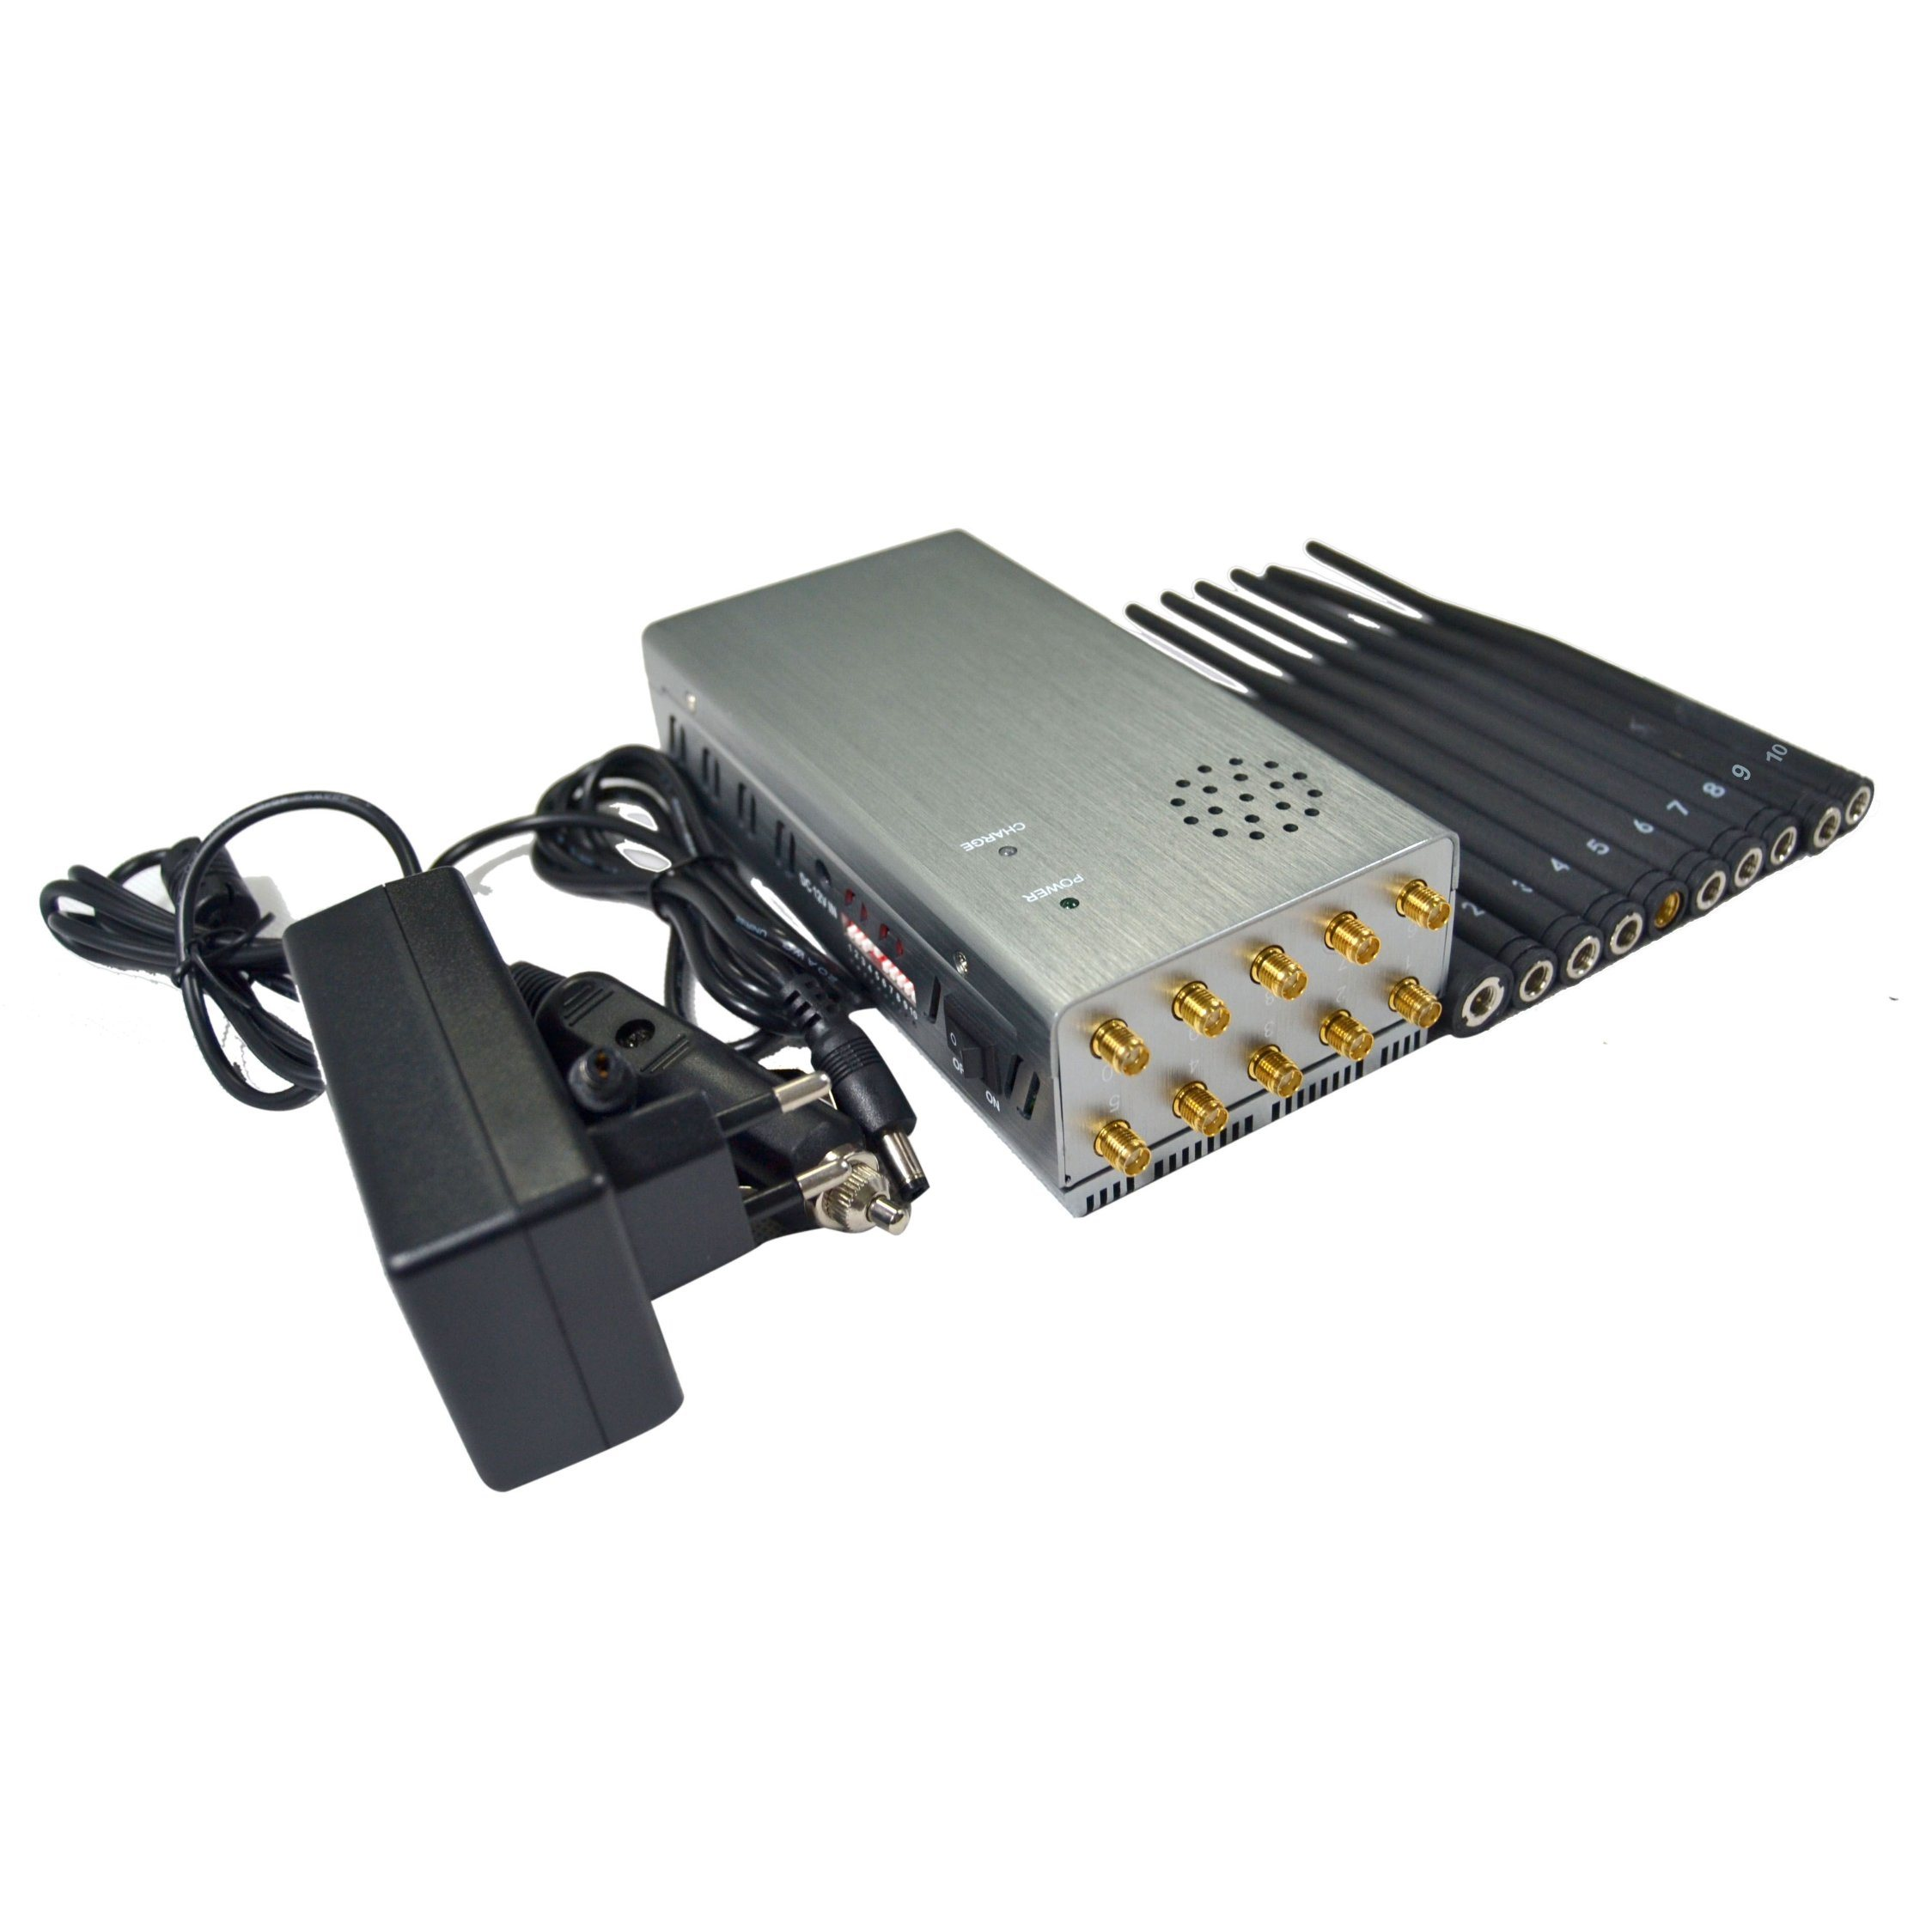 how to make signal jammer - China Lojack 2g 3G 4G 5g GPS 433MHz315MHz868MHz Full Band up to 10 Antennas Signal Blocker - China 8000mA Battery Jammer, Large Volume Power Signal Blocker